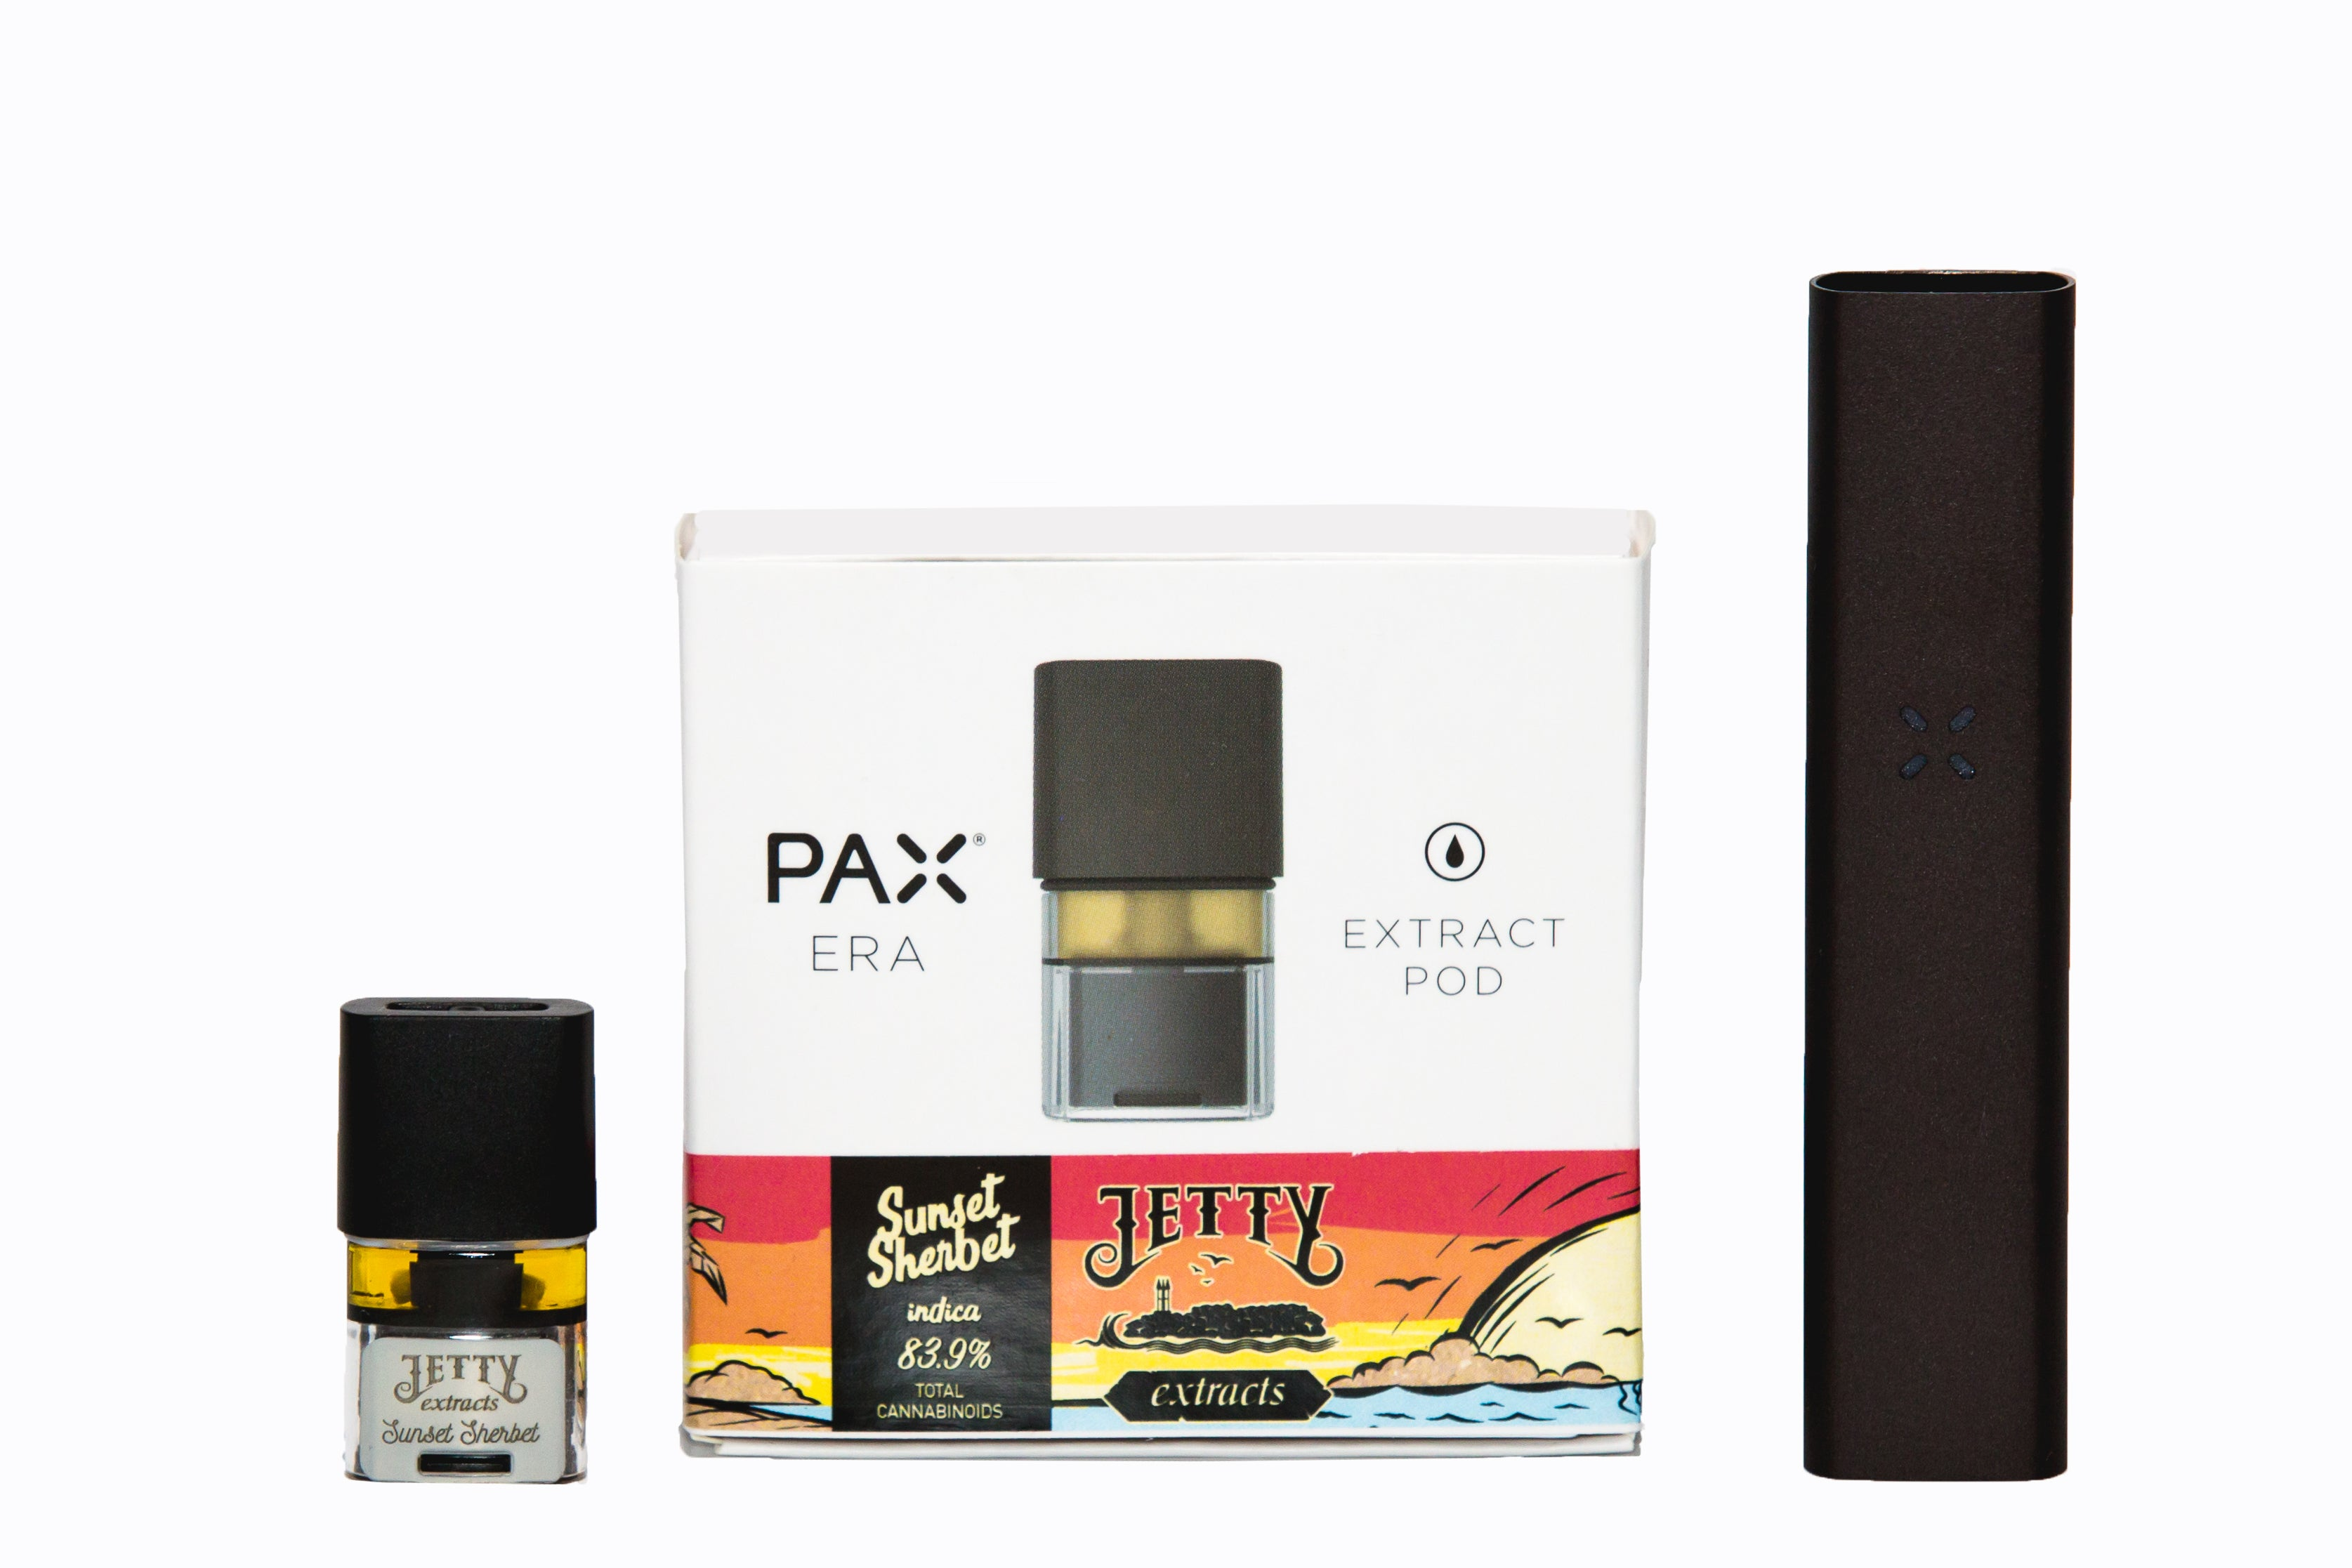 The First Sunset Jetty Extracts Pax Era Pods Jetty Extracts News